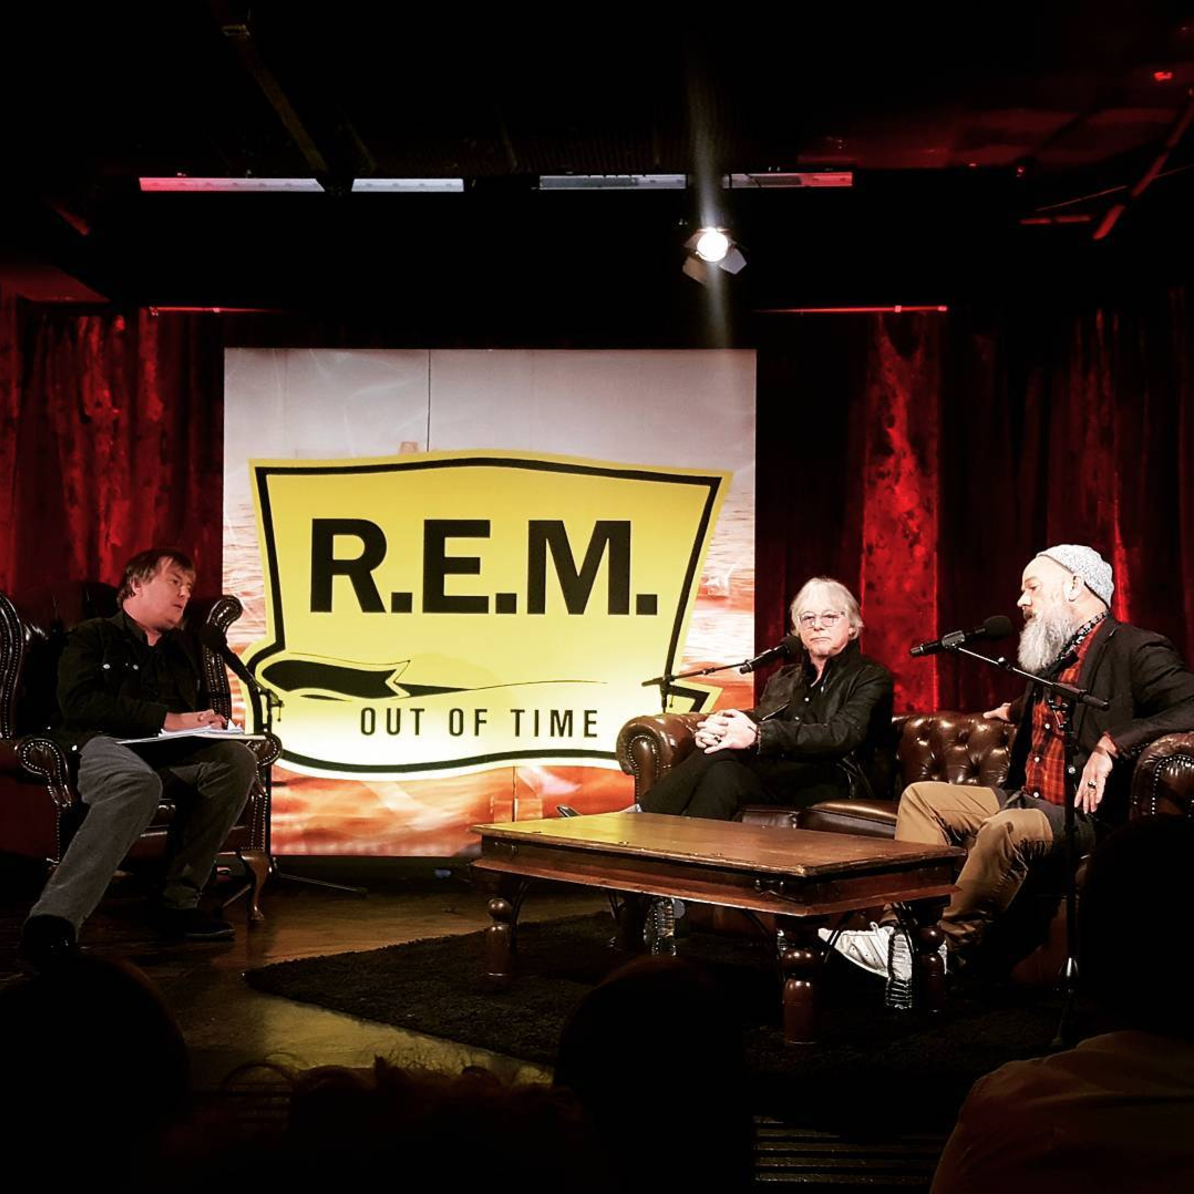 R.E.M Michael stipe mike mills out of time 25th anniversary borderline